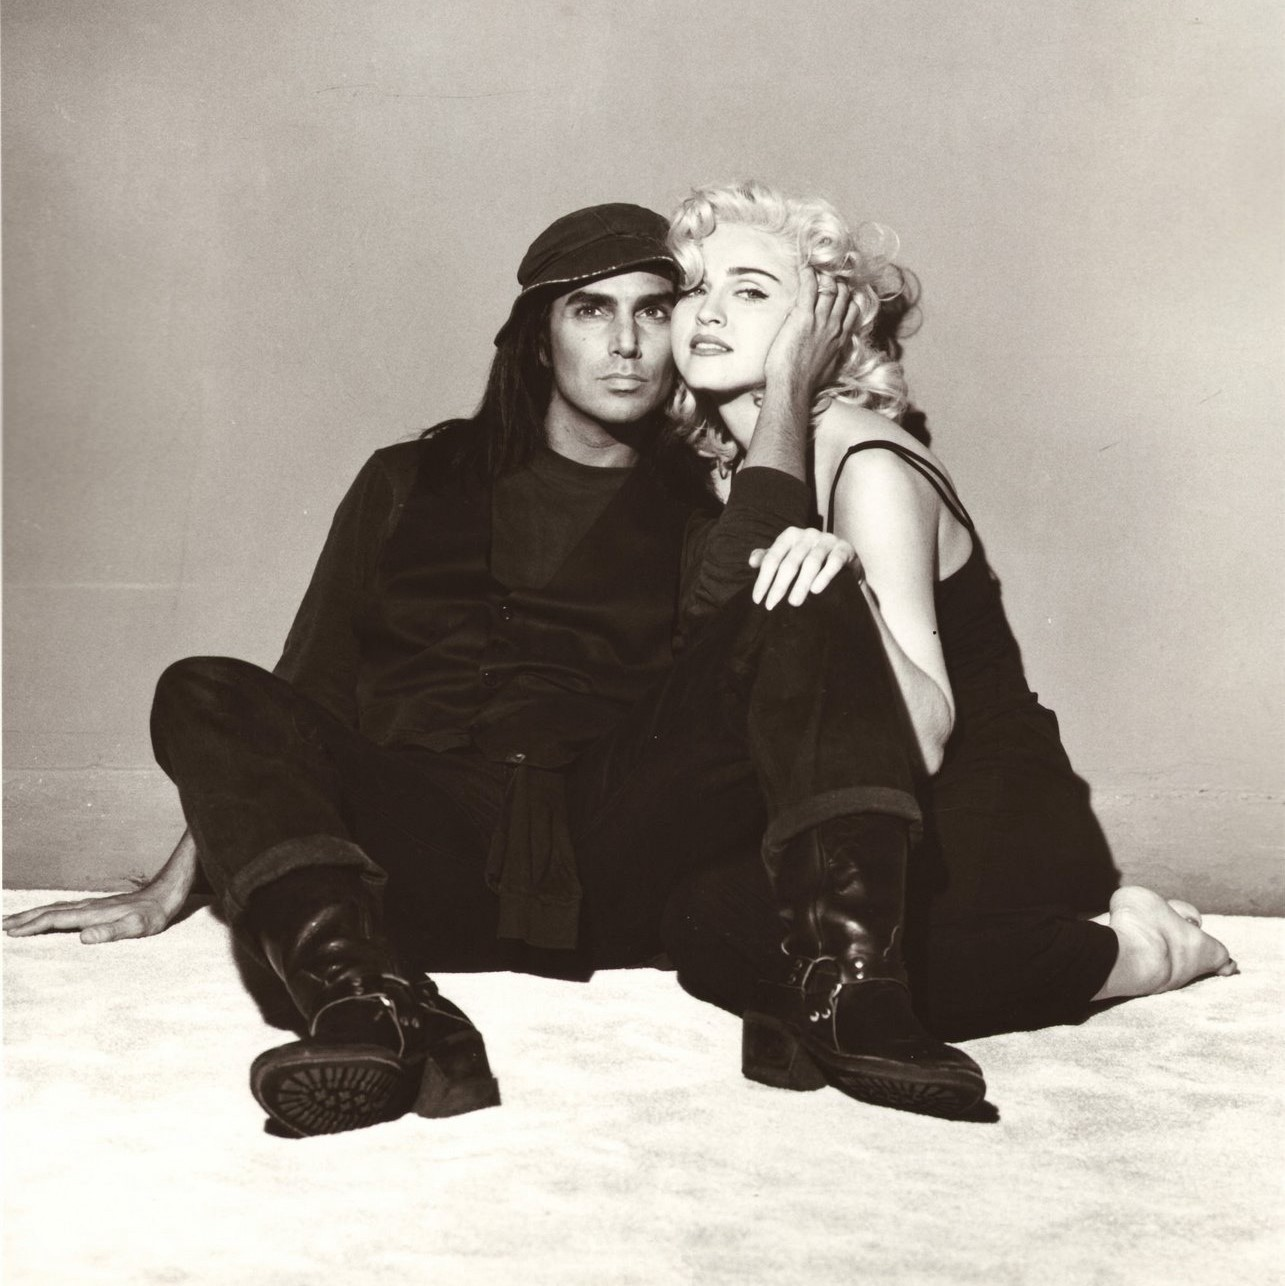 Steven Meisel: The Mastermind Of Fashion Photography: Steven Meisel